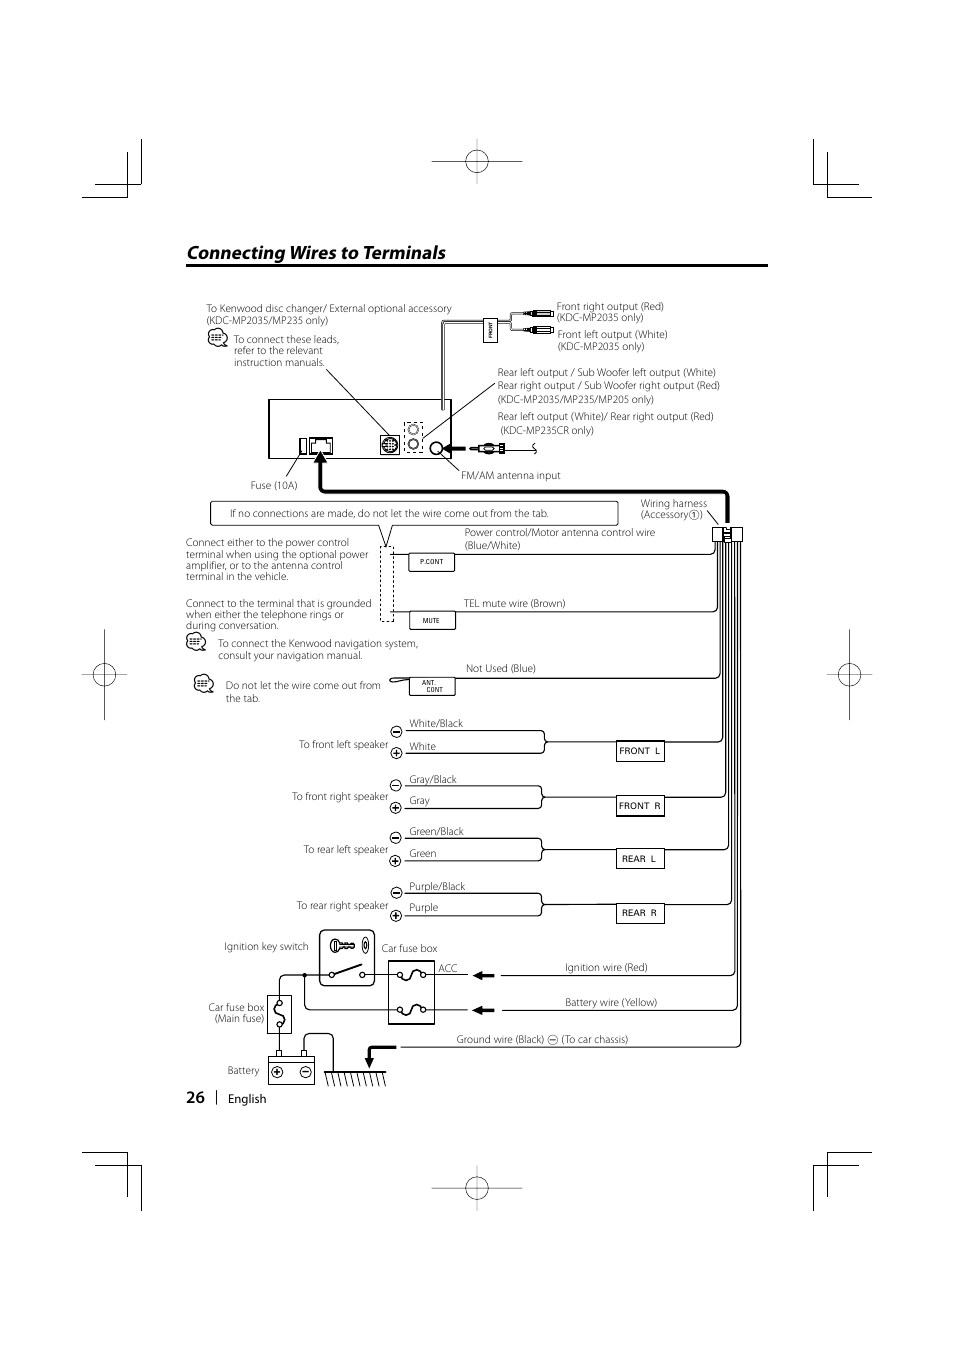 medium resolution of connecting wires to terminals kenwood kdc mp205 user manual page kenwood kdc 400u wiring diagram kenwood kdc mp205 wiring diagram